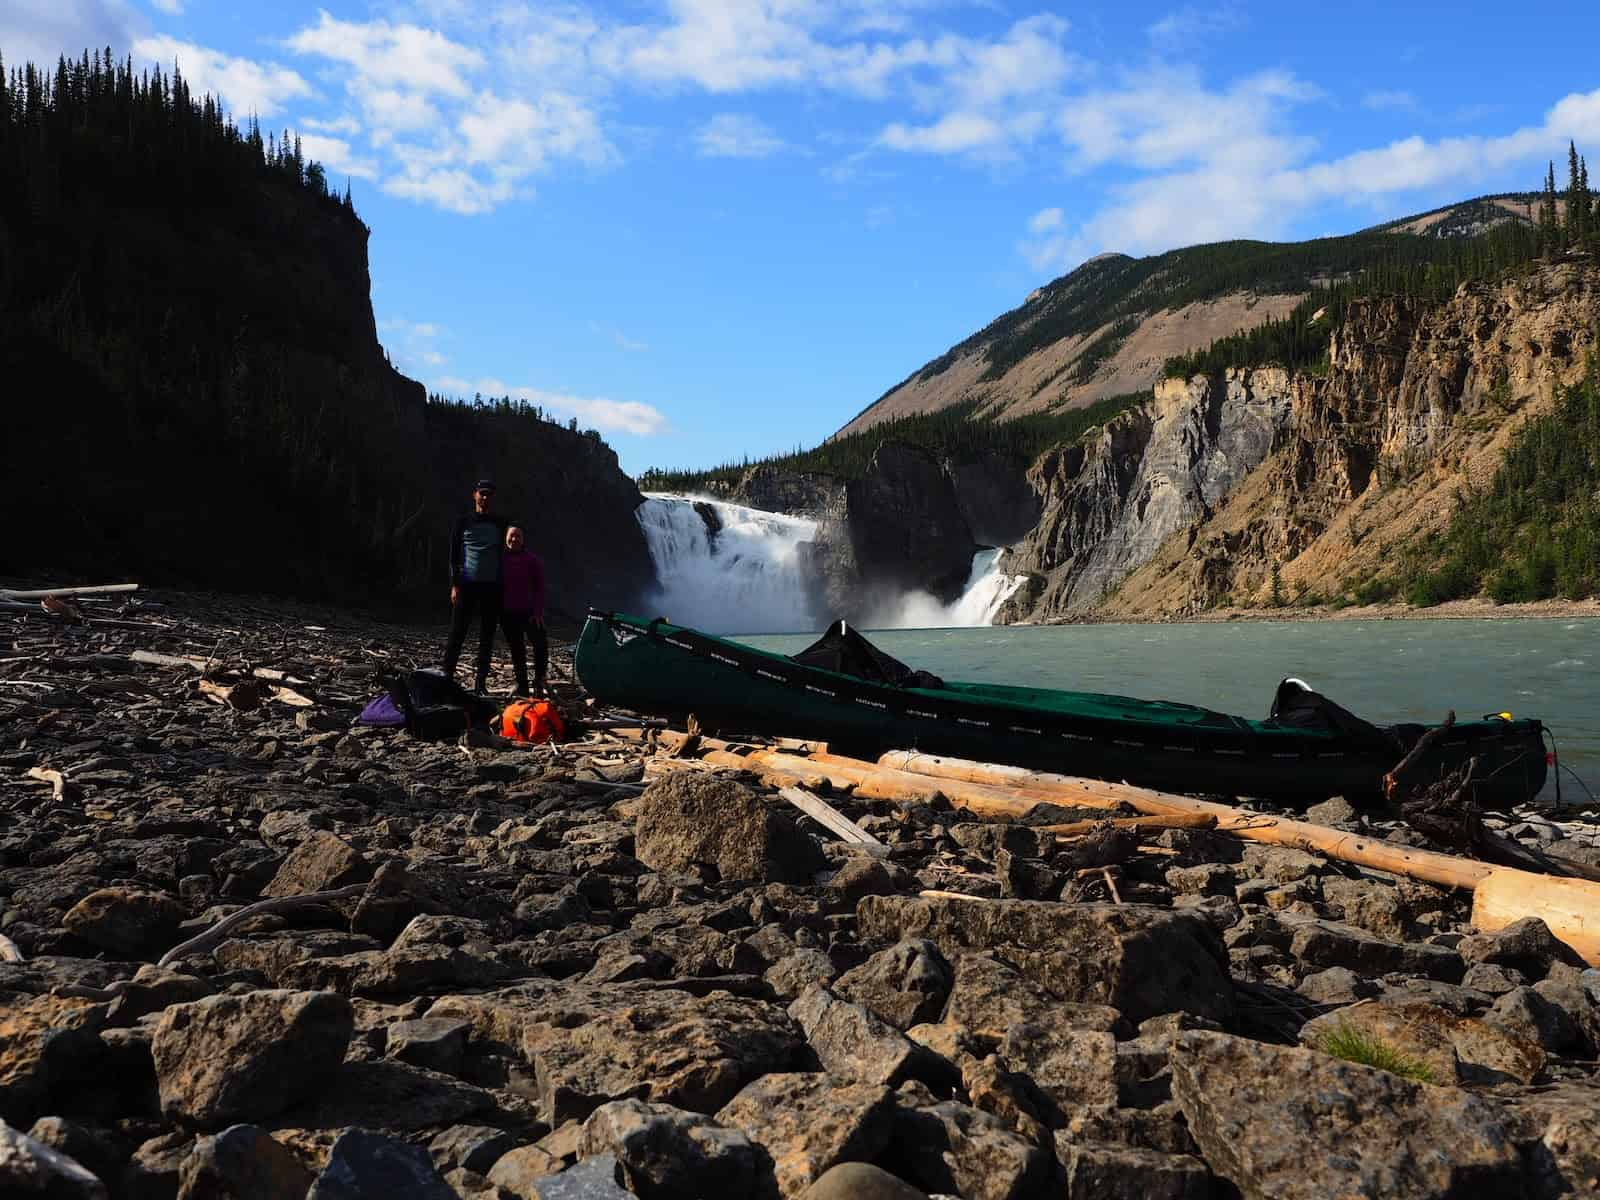 Nahanni River by Canoe: Readying to push off